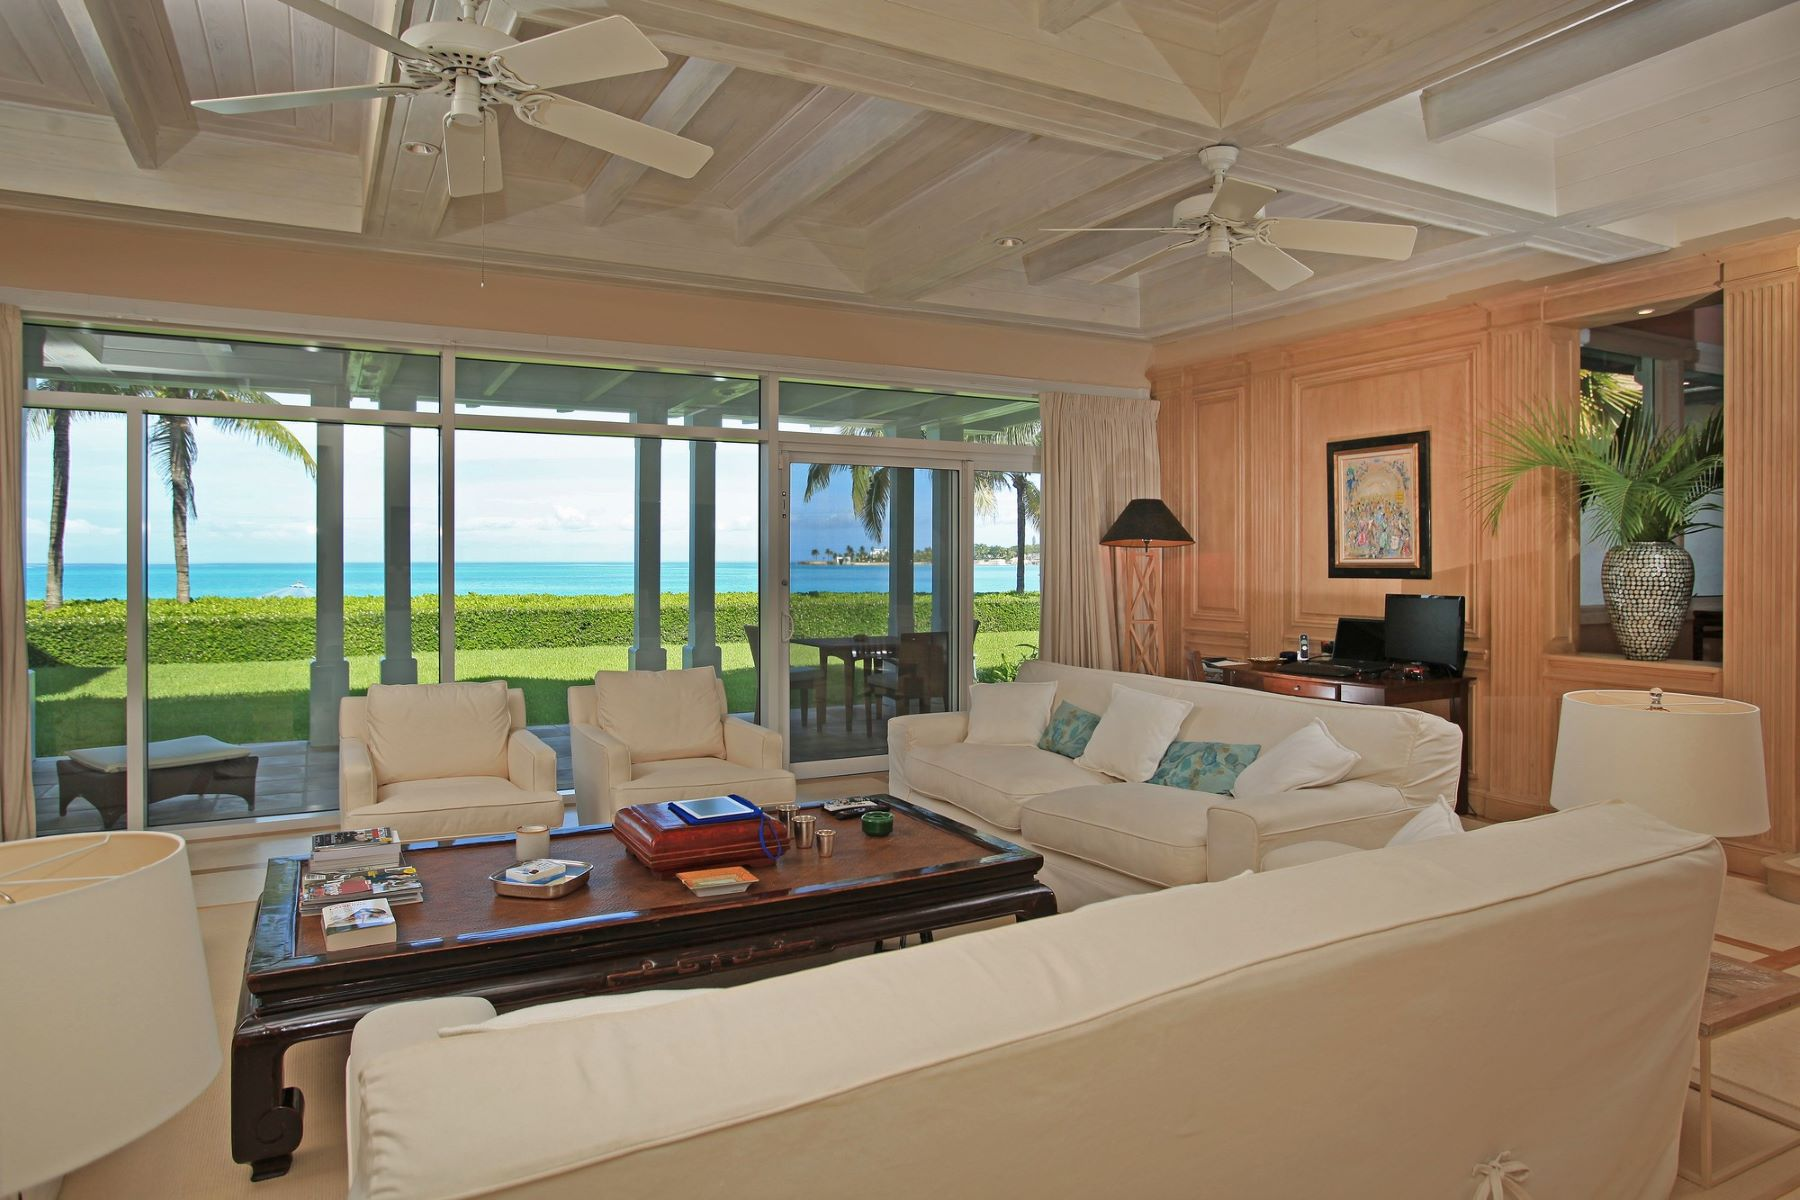 Additional photo for property listing at Lagoon Beach House Other Bahamas, Andere Gebiete In Den Bahamas Bahamas